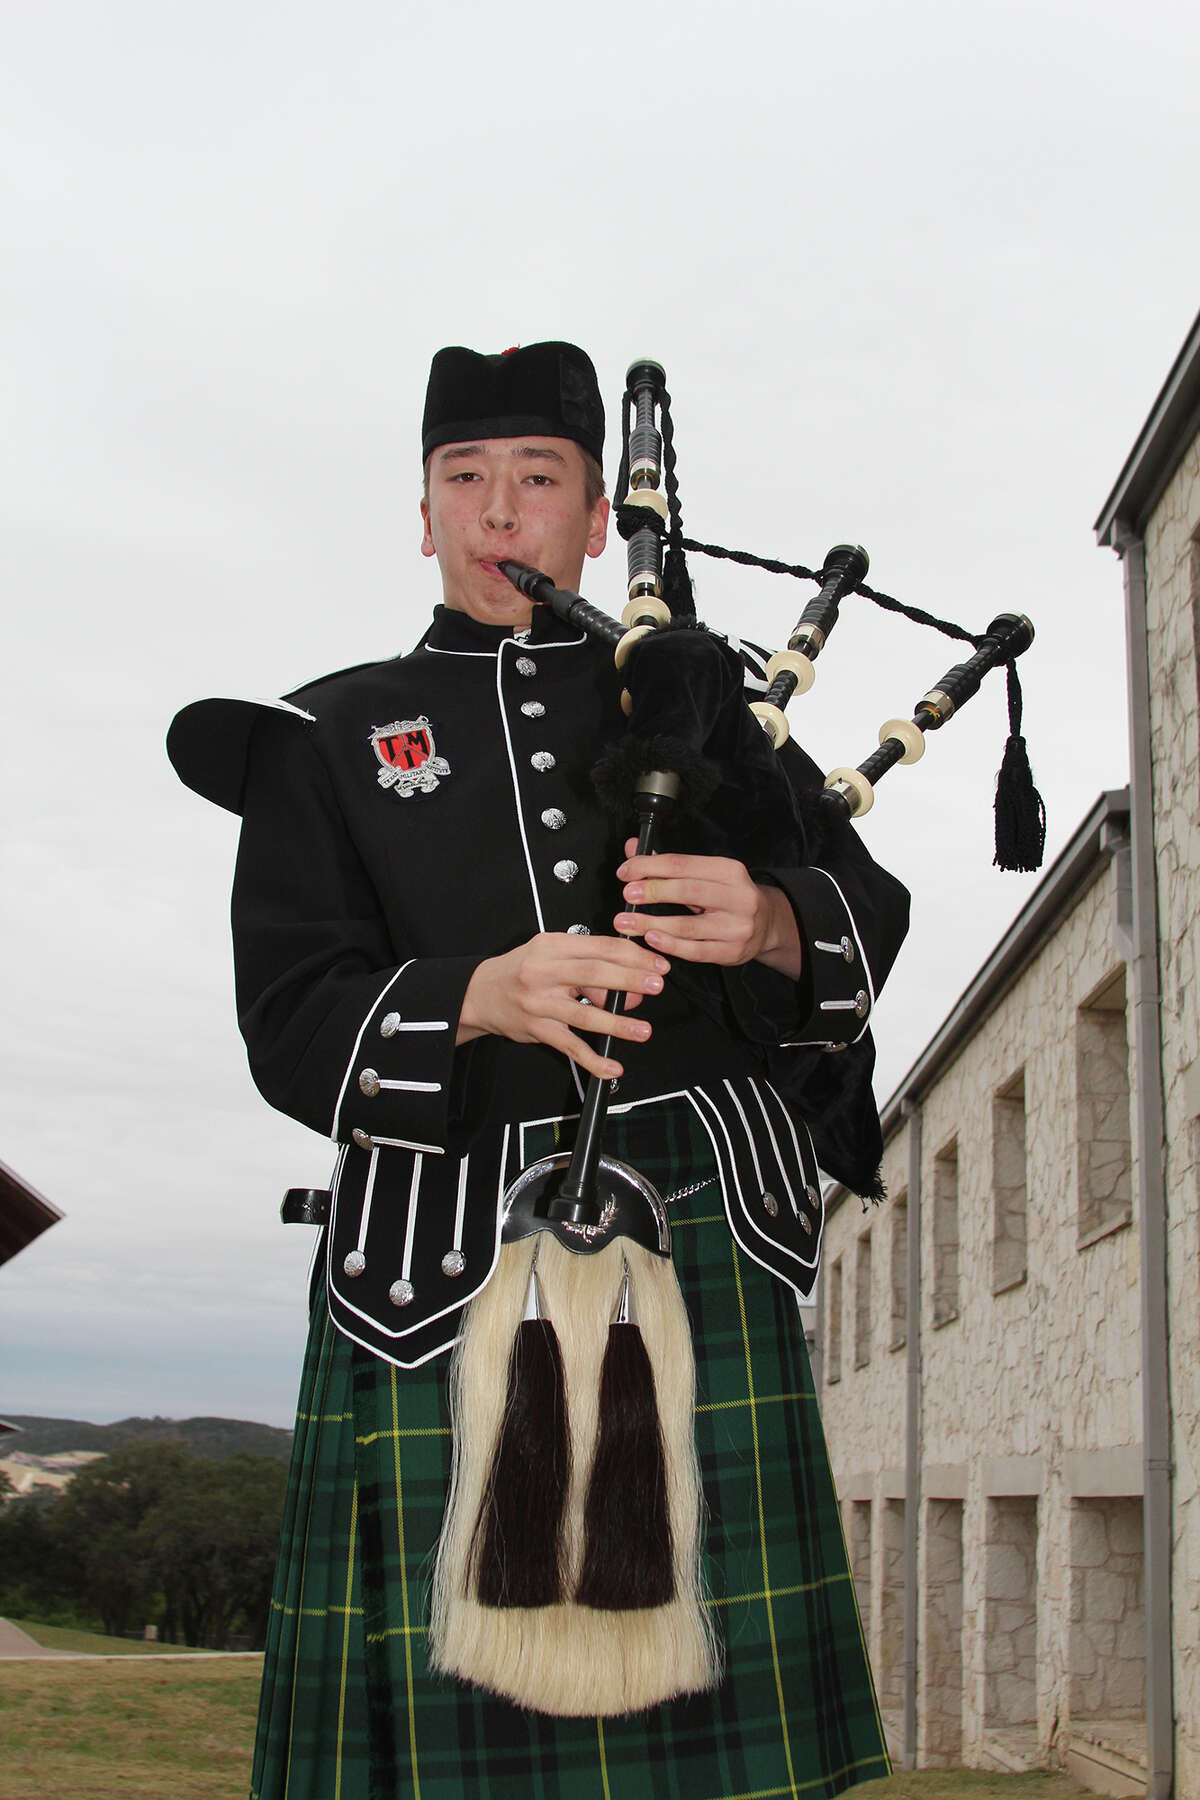 Lincoln Abbott, a freshman at TMI-The Episcopal School, became entranced with the bagpipes when he sighted players in the Boerne Weihnachts Parade six years ago. His skill level has brought him recent awards.